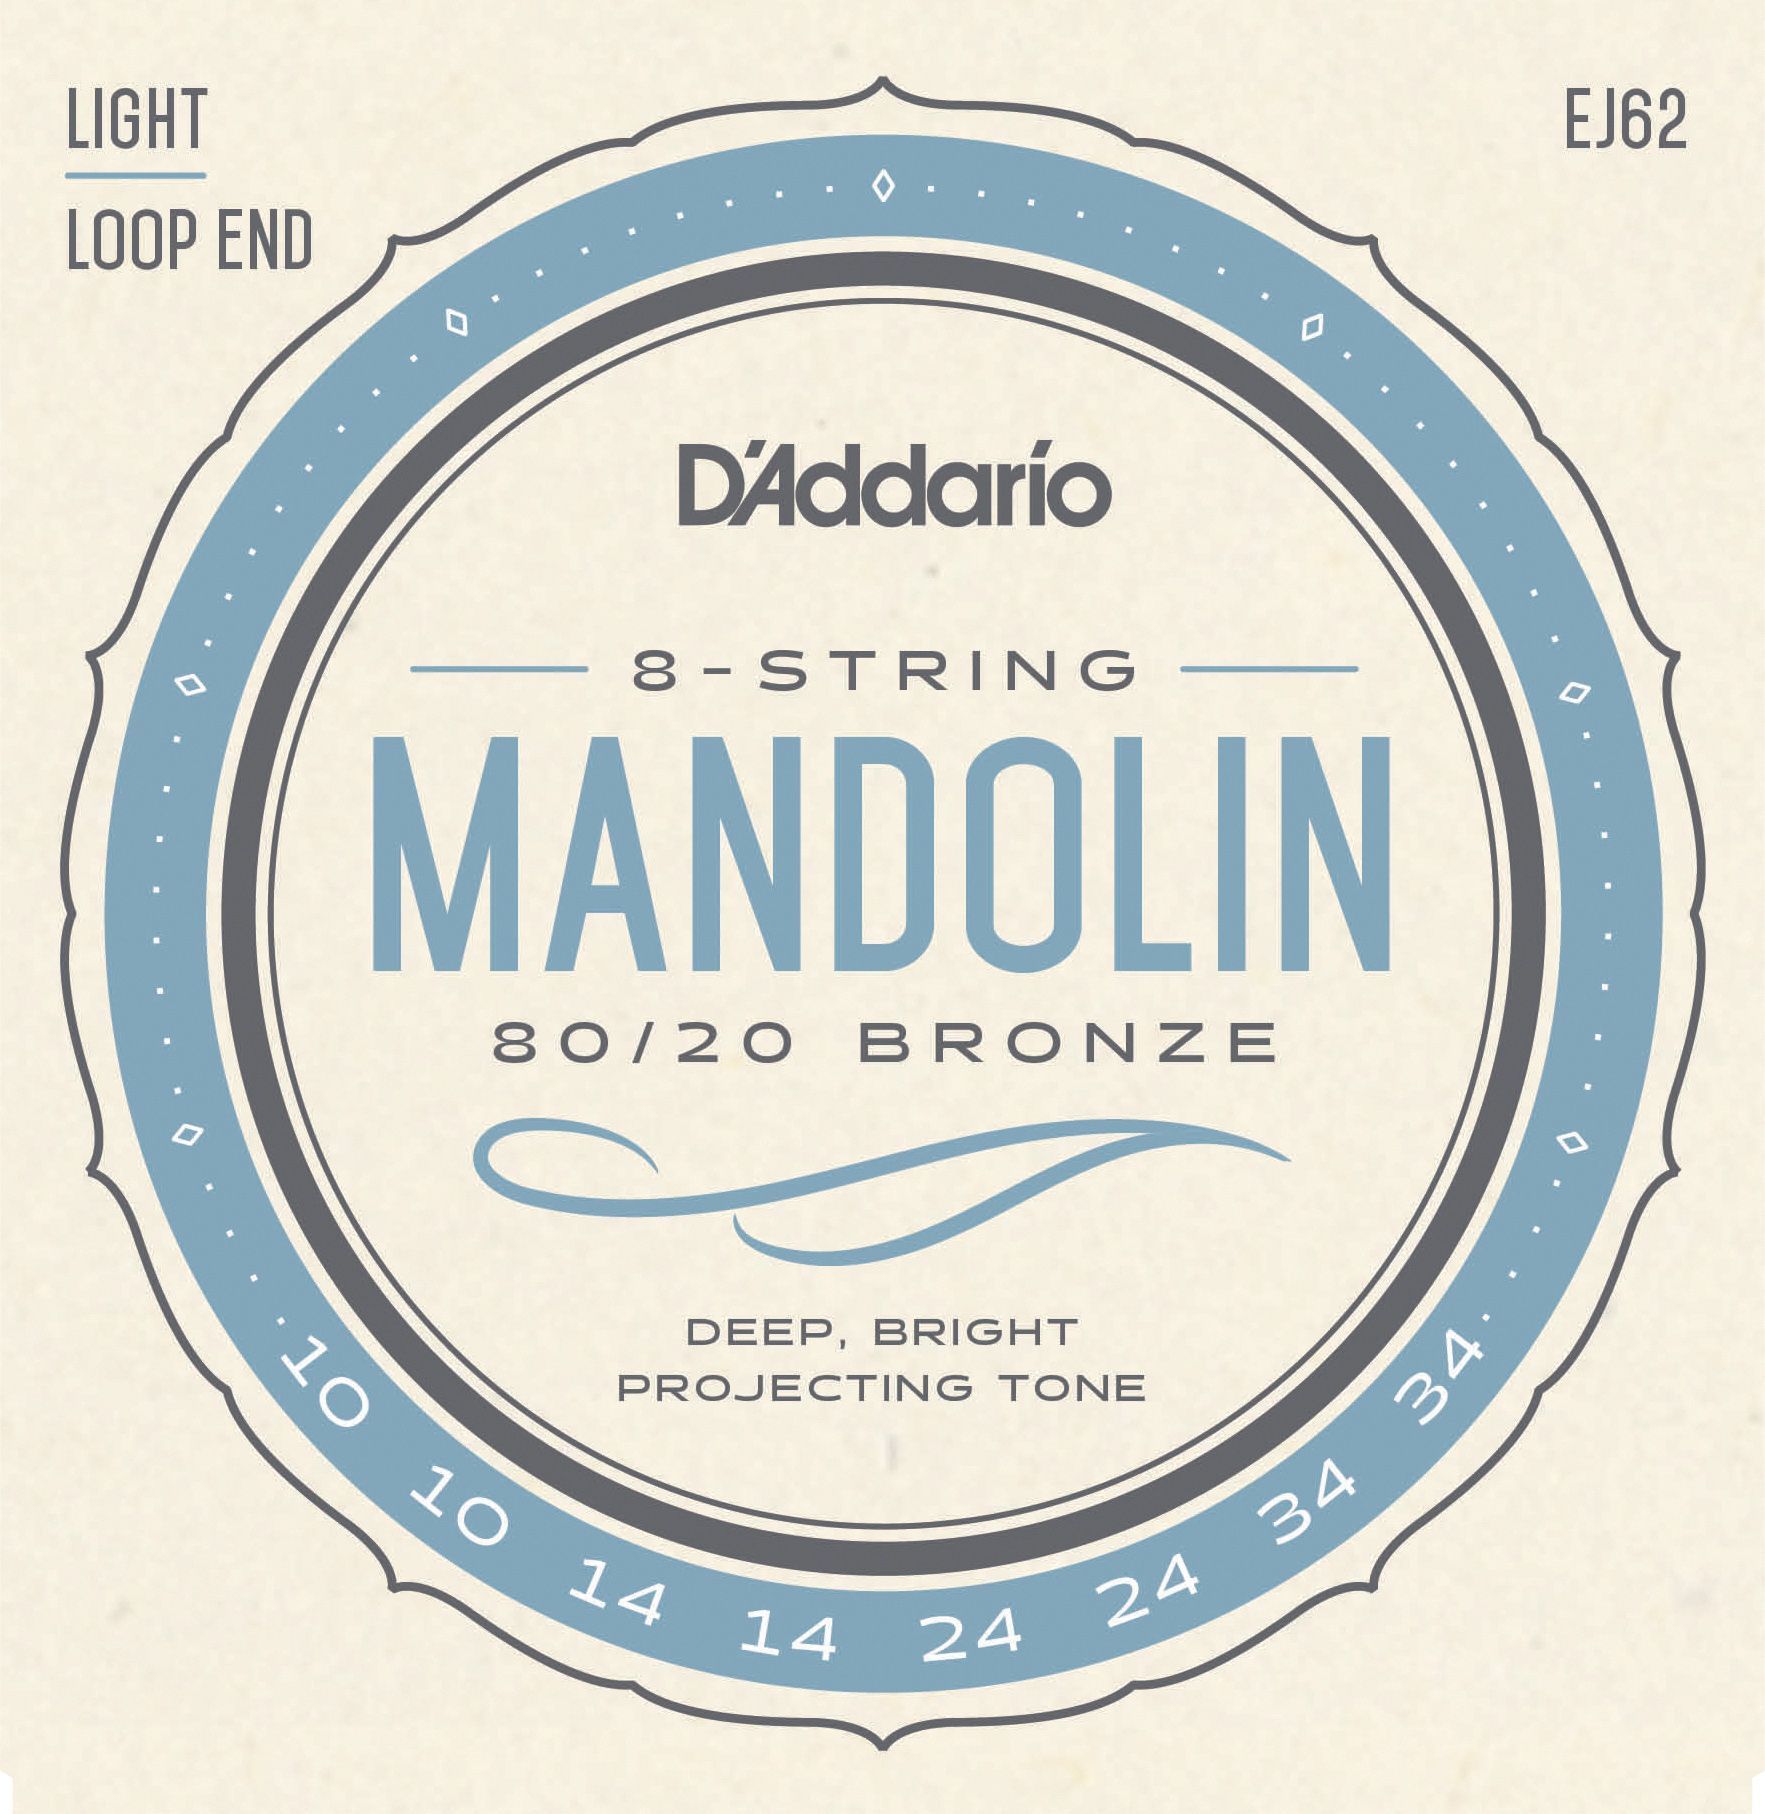 D'Addario 80/20 Bronze EJ62 Mandolin Strings, Light, 10-34